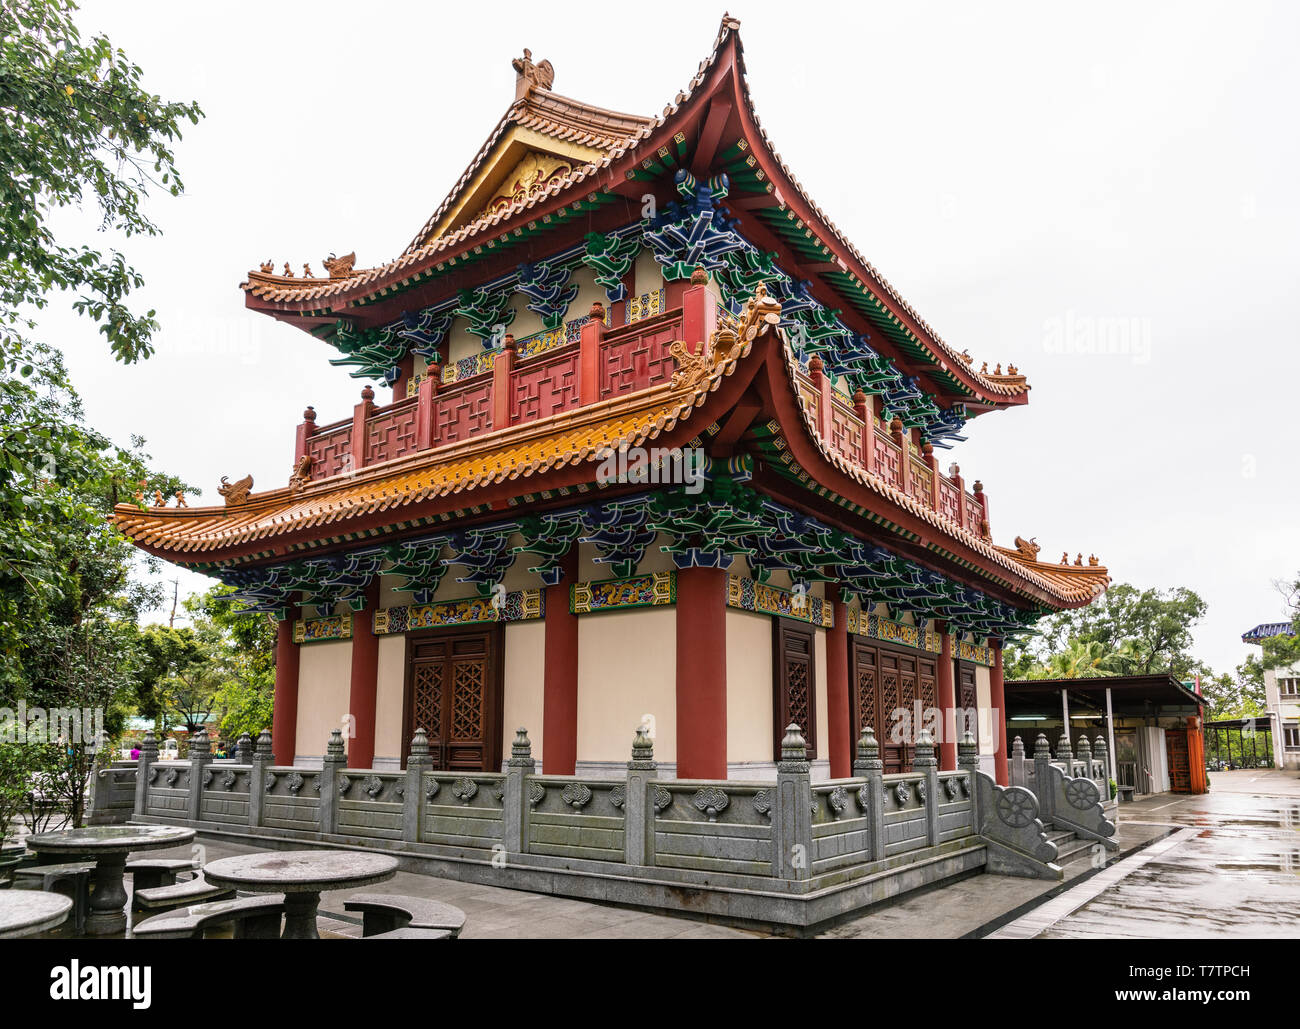 Hong Kong, China - March 7, 2019: Lantau Island. Po Lin Buddhist Monastery. Small red-roofed hall under silver sky. Some green foliage. Decorated wall - Stock Image